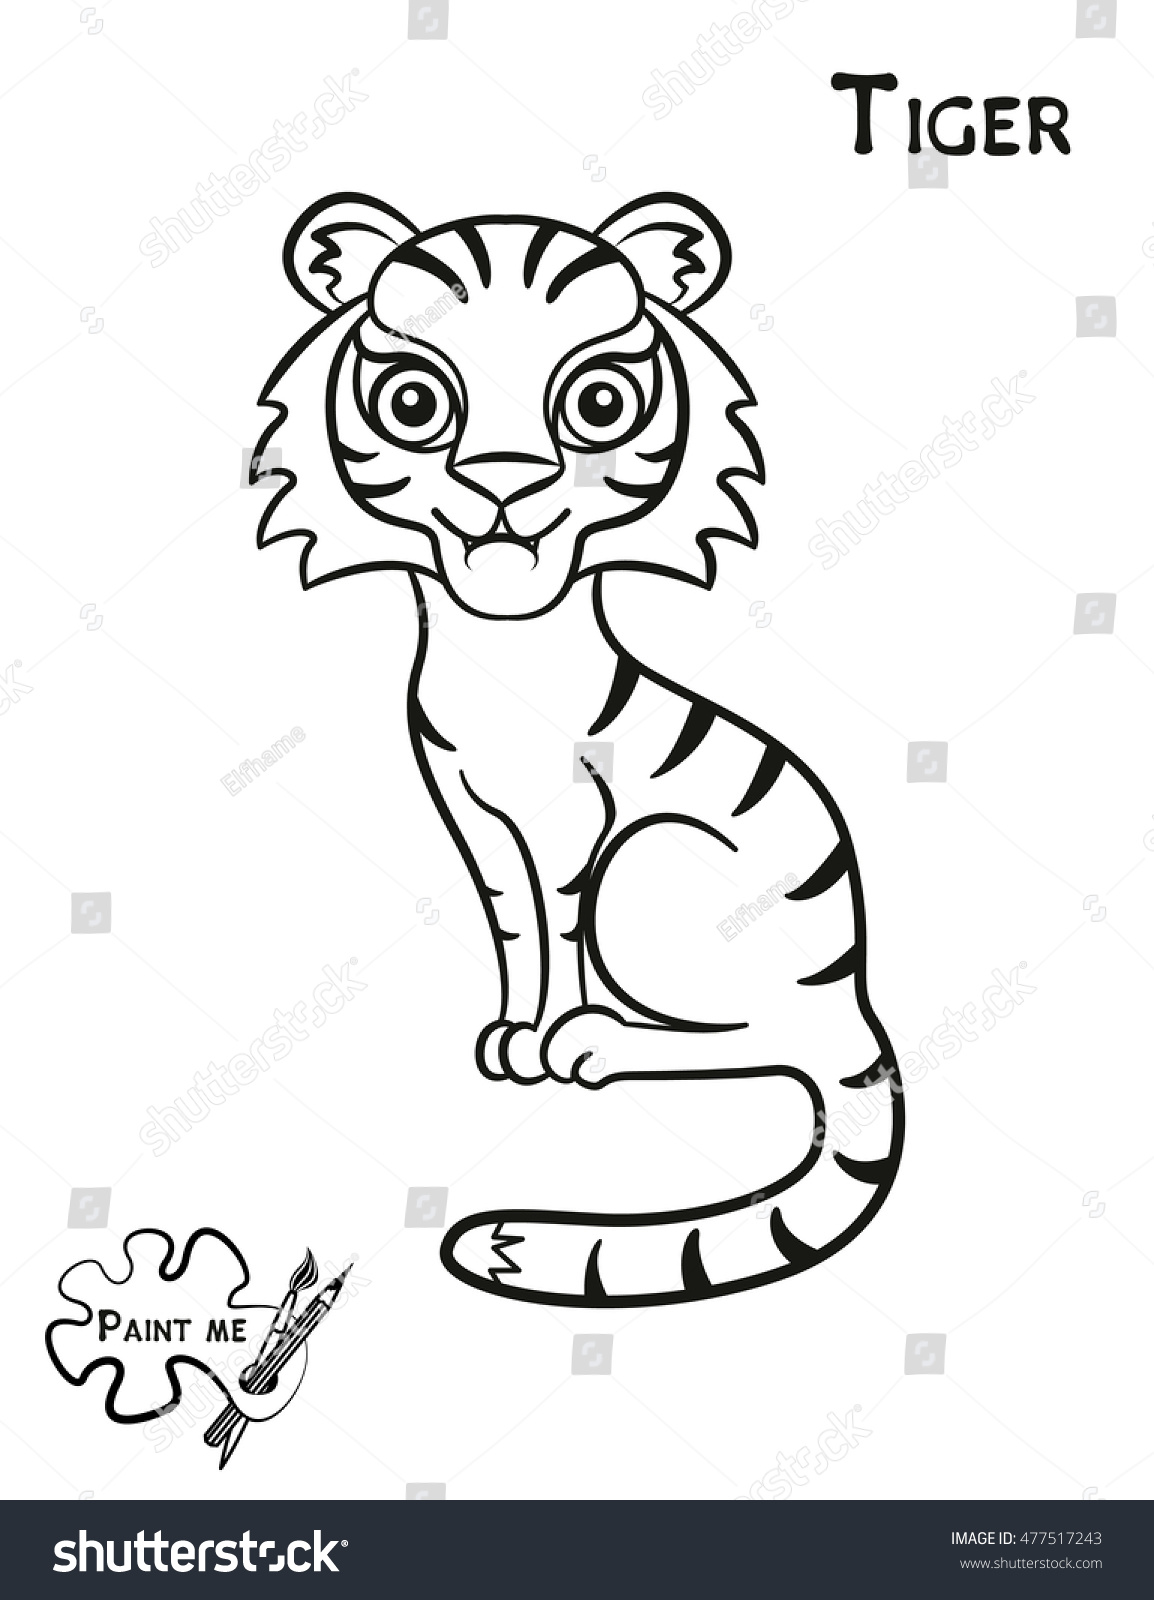 childrens coloring book that says paint me tiger - Childrens Coloring Books